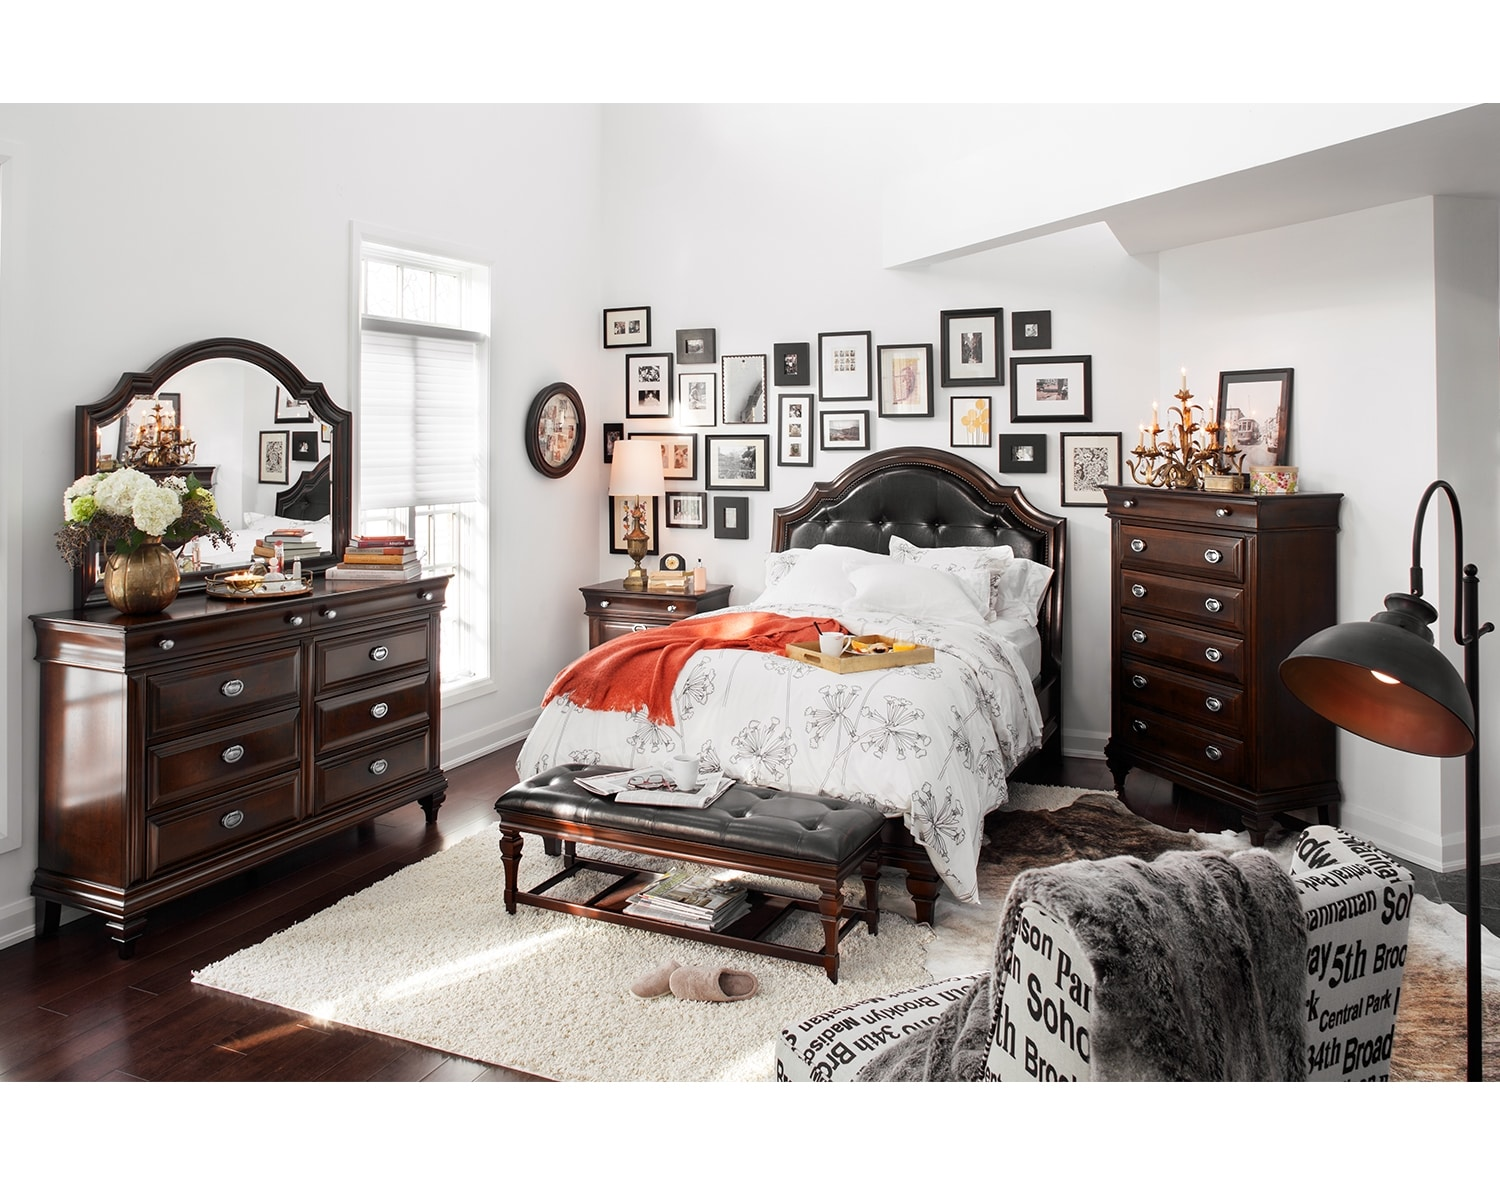 Bedroom Furniture - The Dover Collection - Queen Bed